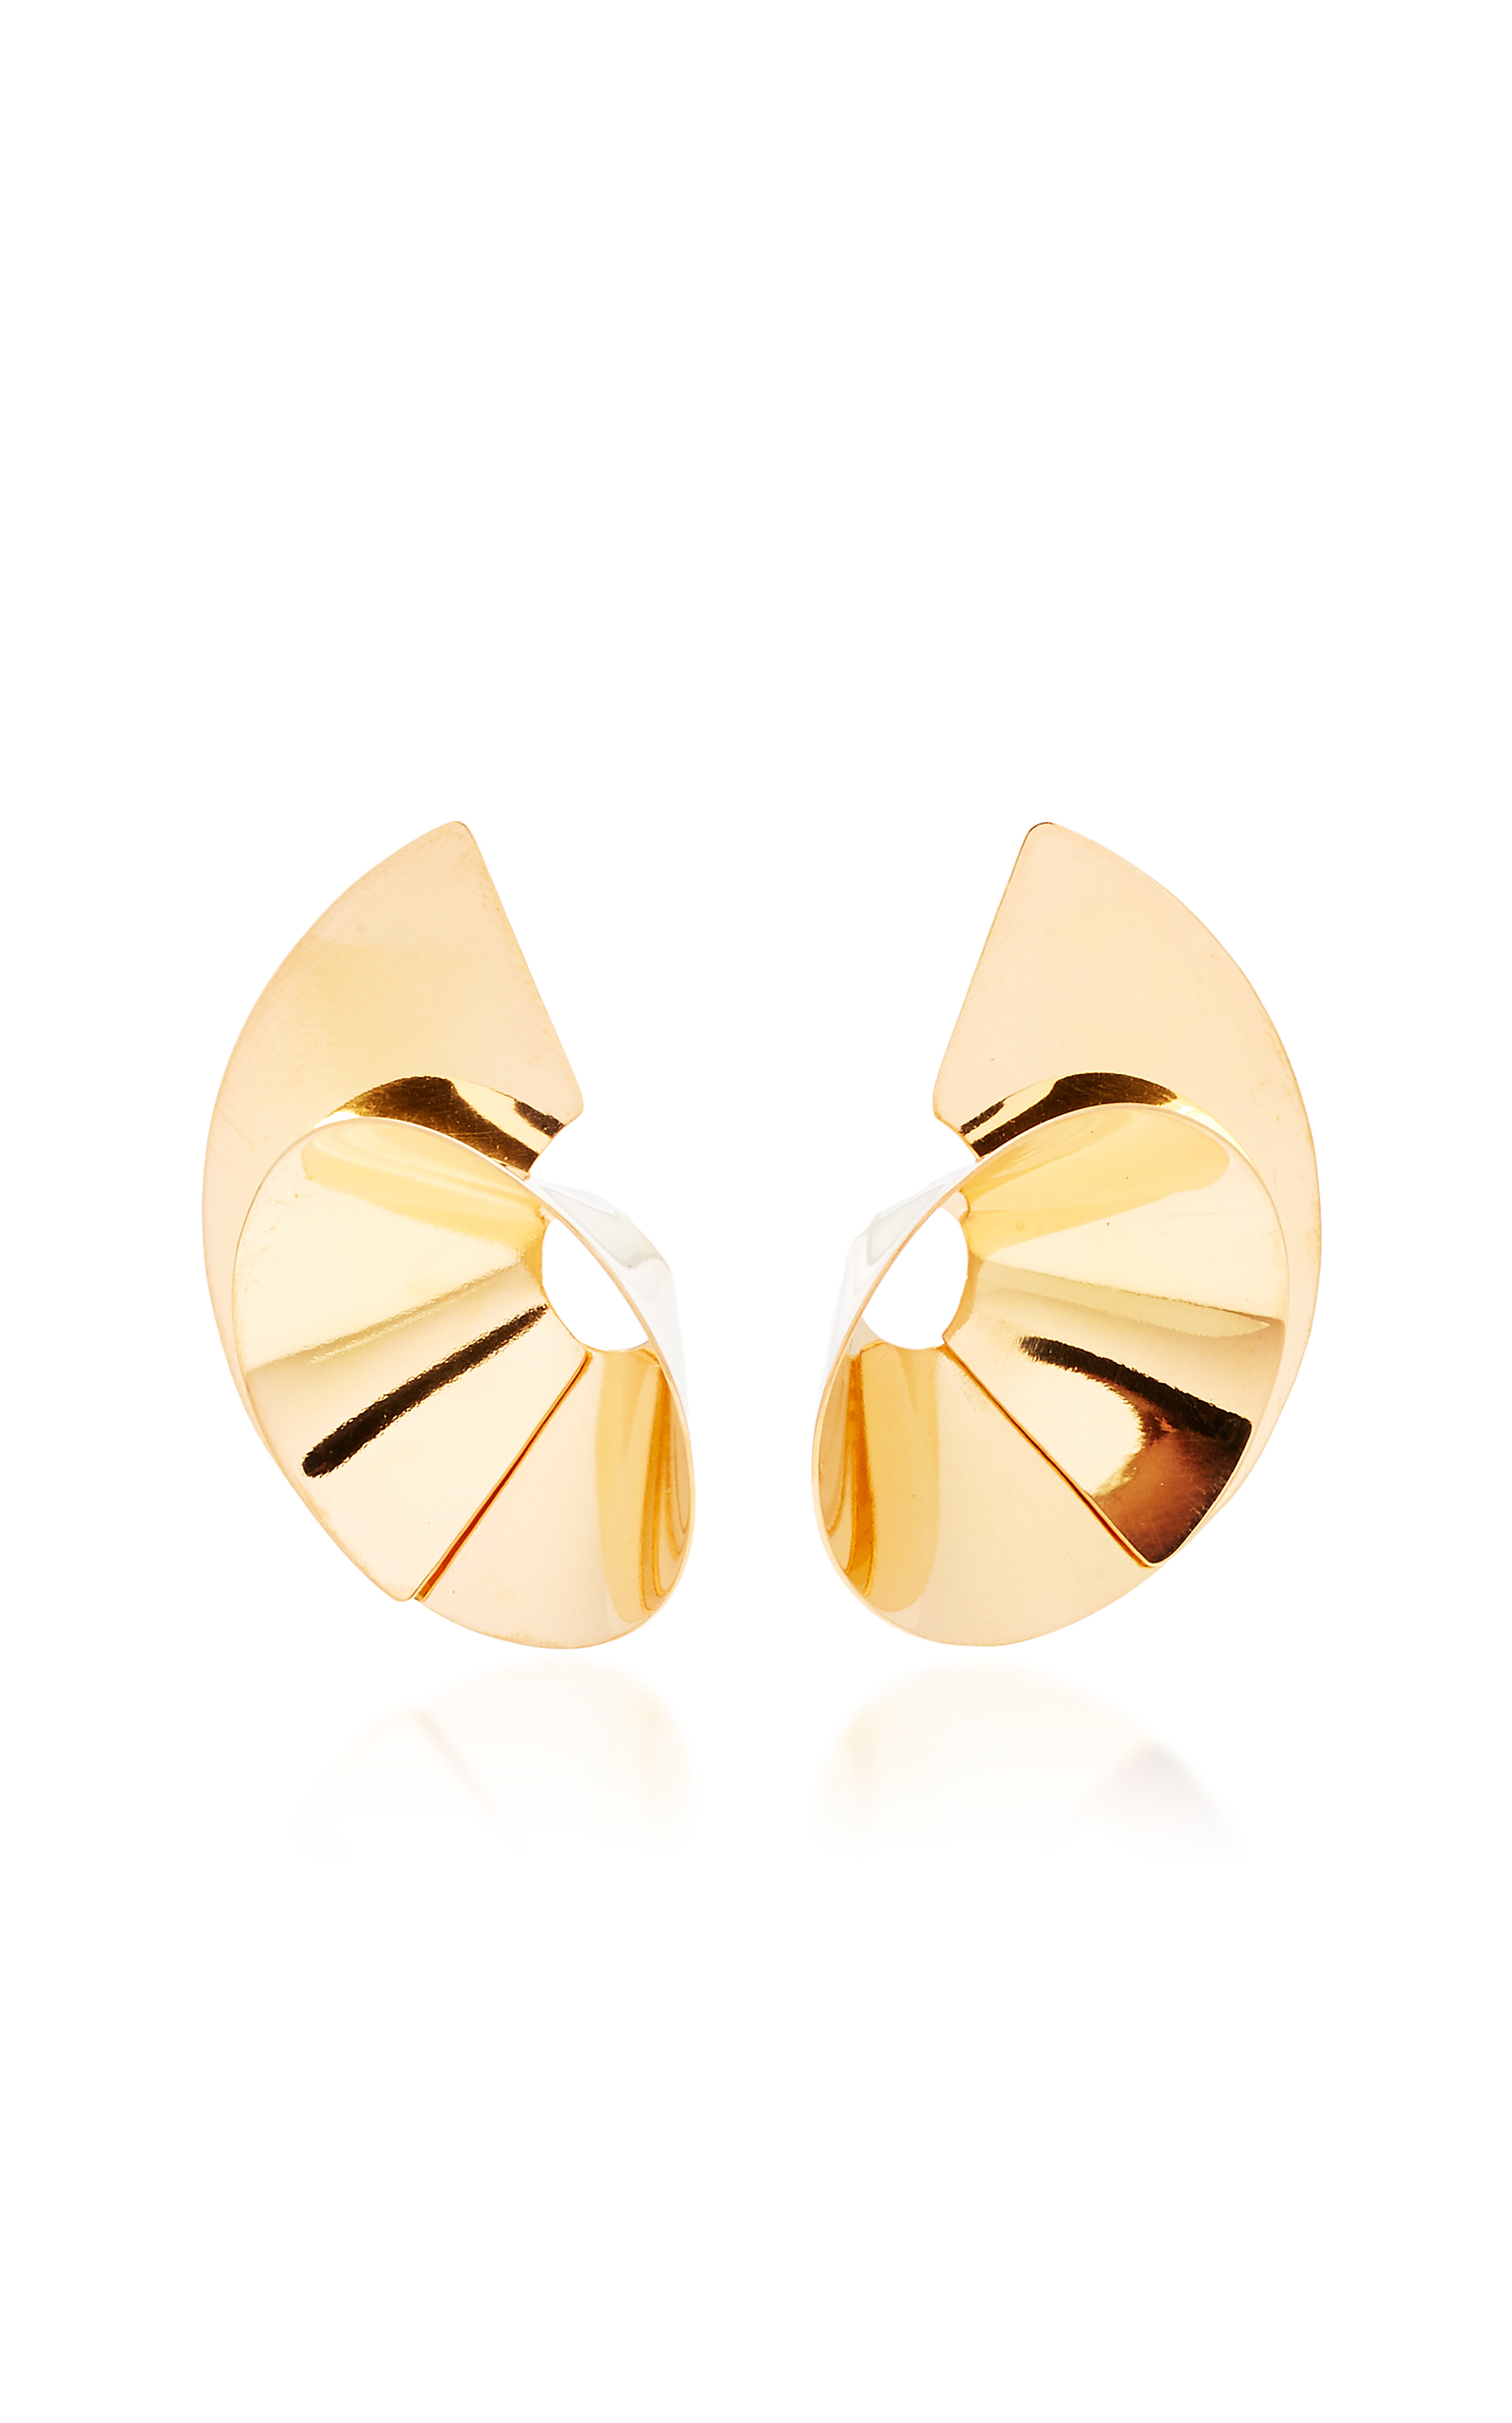 gold inspired plated en cm by ciclo in silver earrings nature